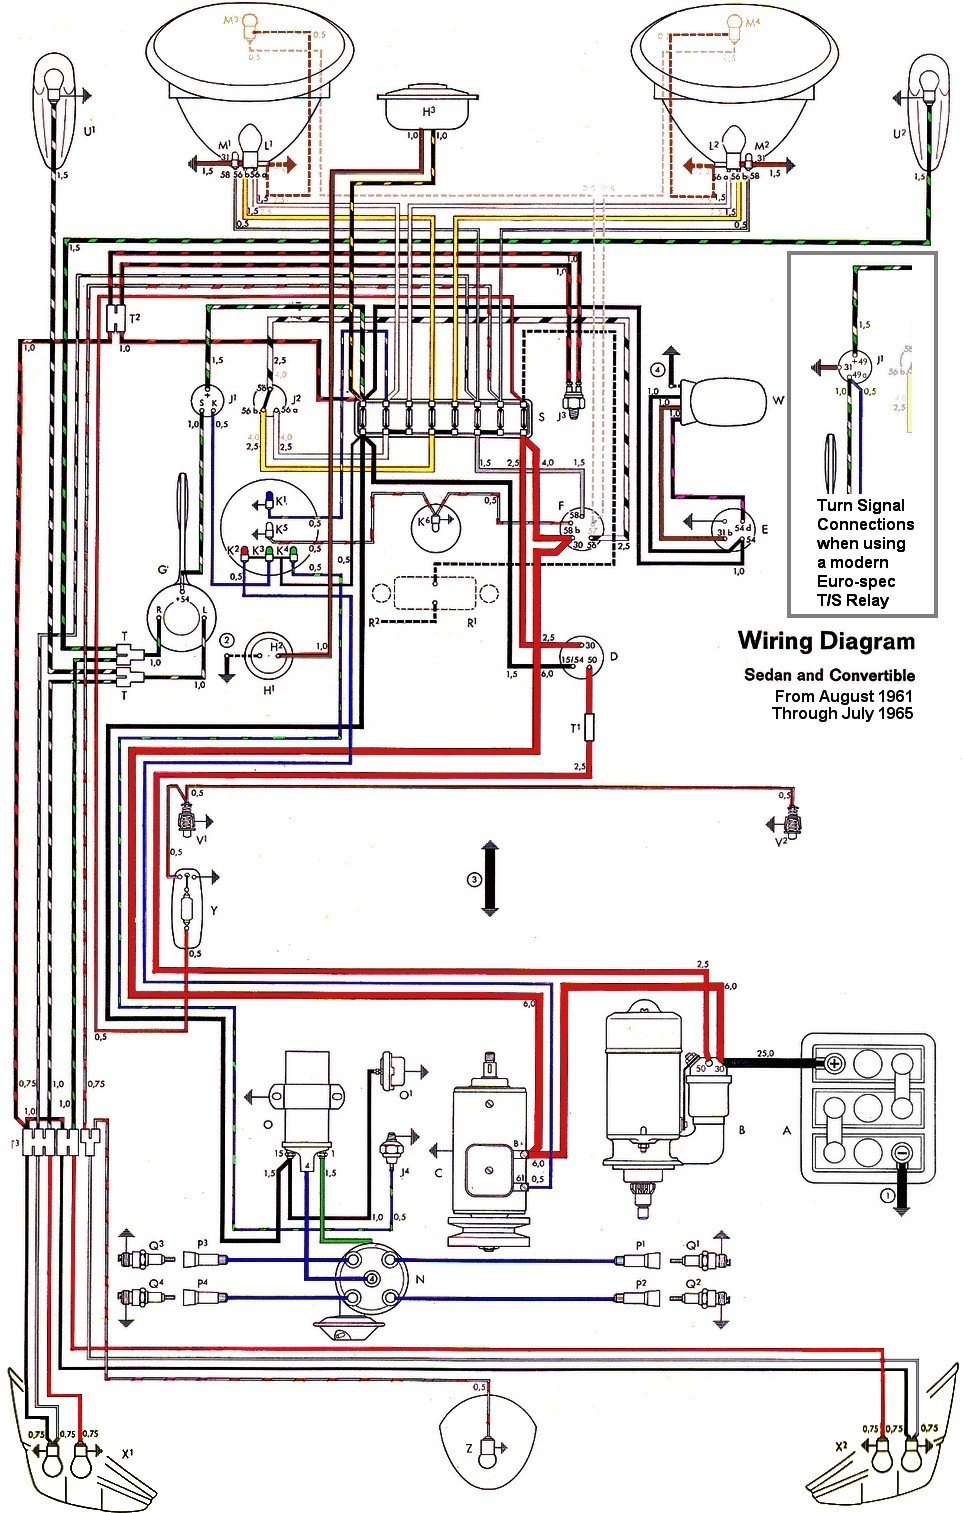 bug_62 65withinset wiring diagram vw beetle sedan and convertible 1961 1965 vw 1971 vw bus wiring diagram at love-stories.co